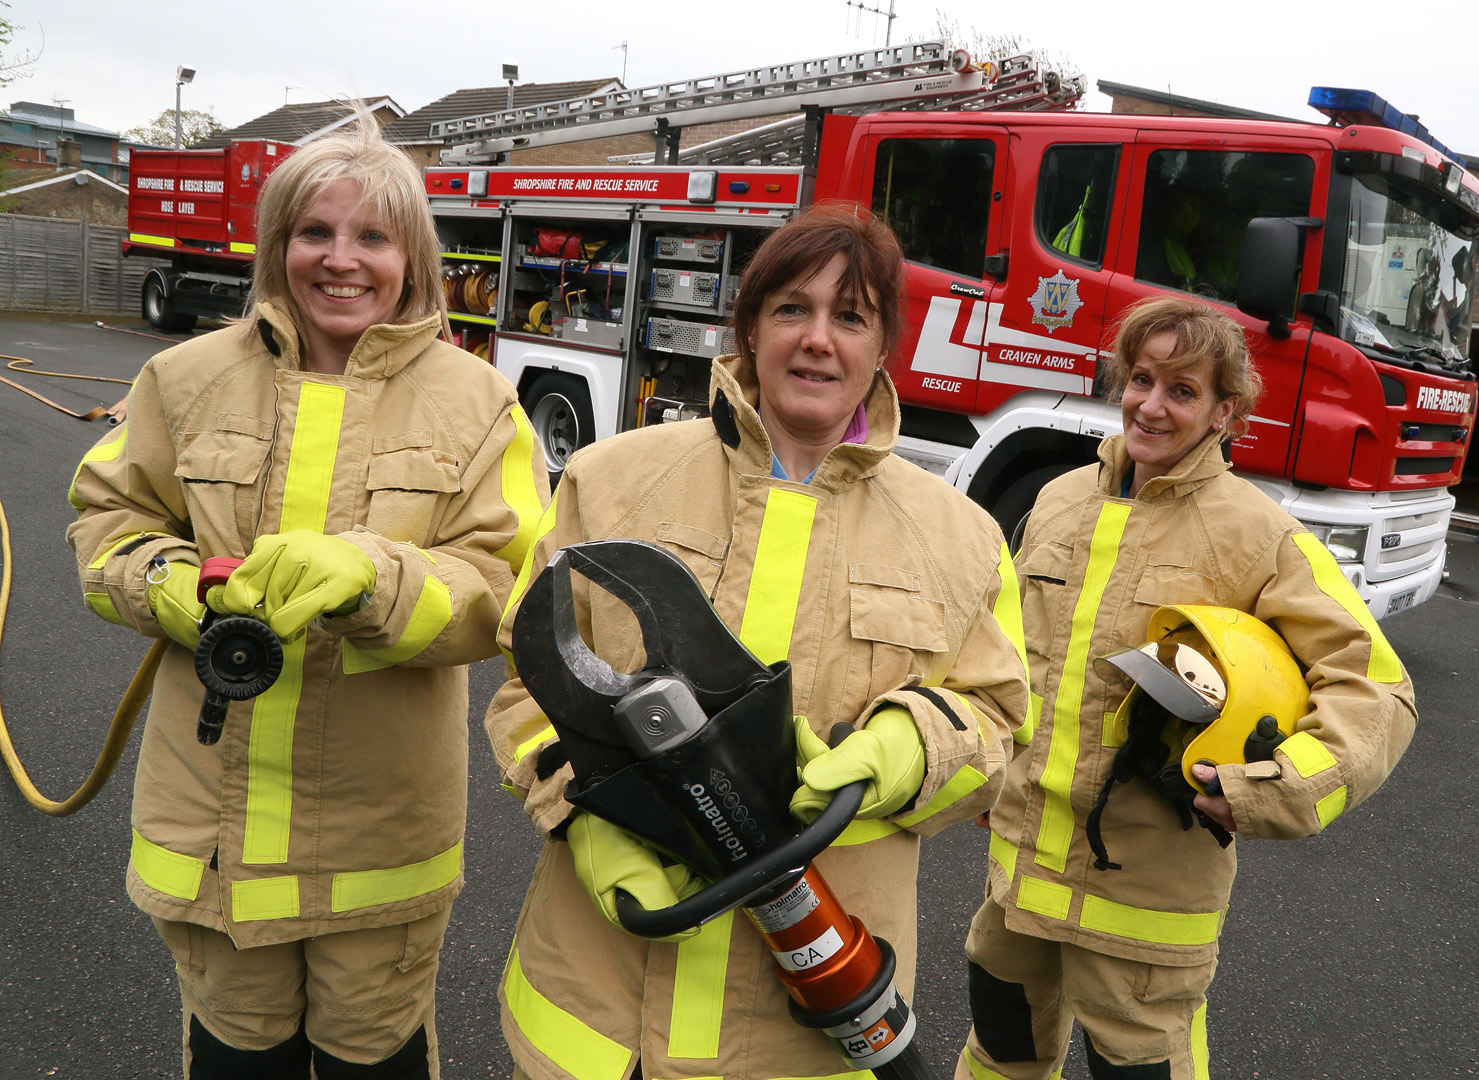 Sally Mawhinney (centre) holds cutting gear used to free people trapped in their vehicles with Tracey Keene (left) and Sylvie Harley (right)